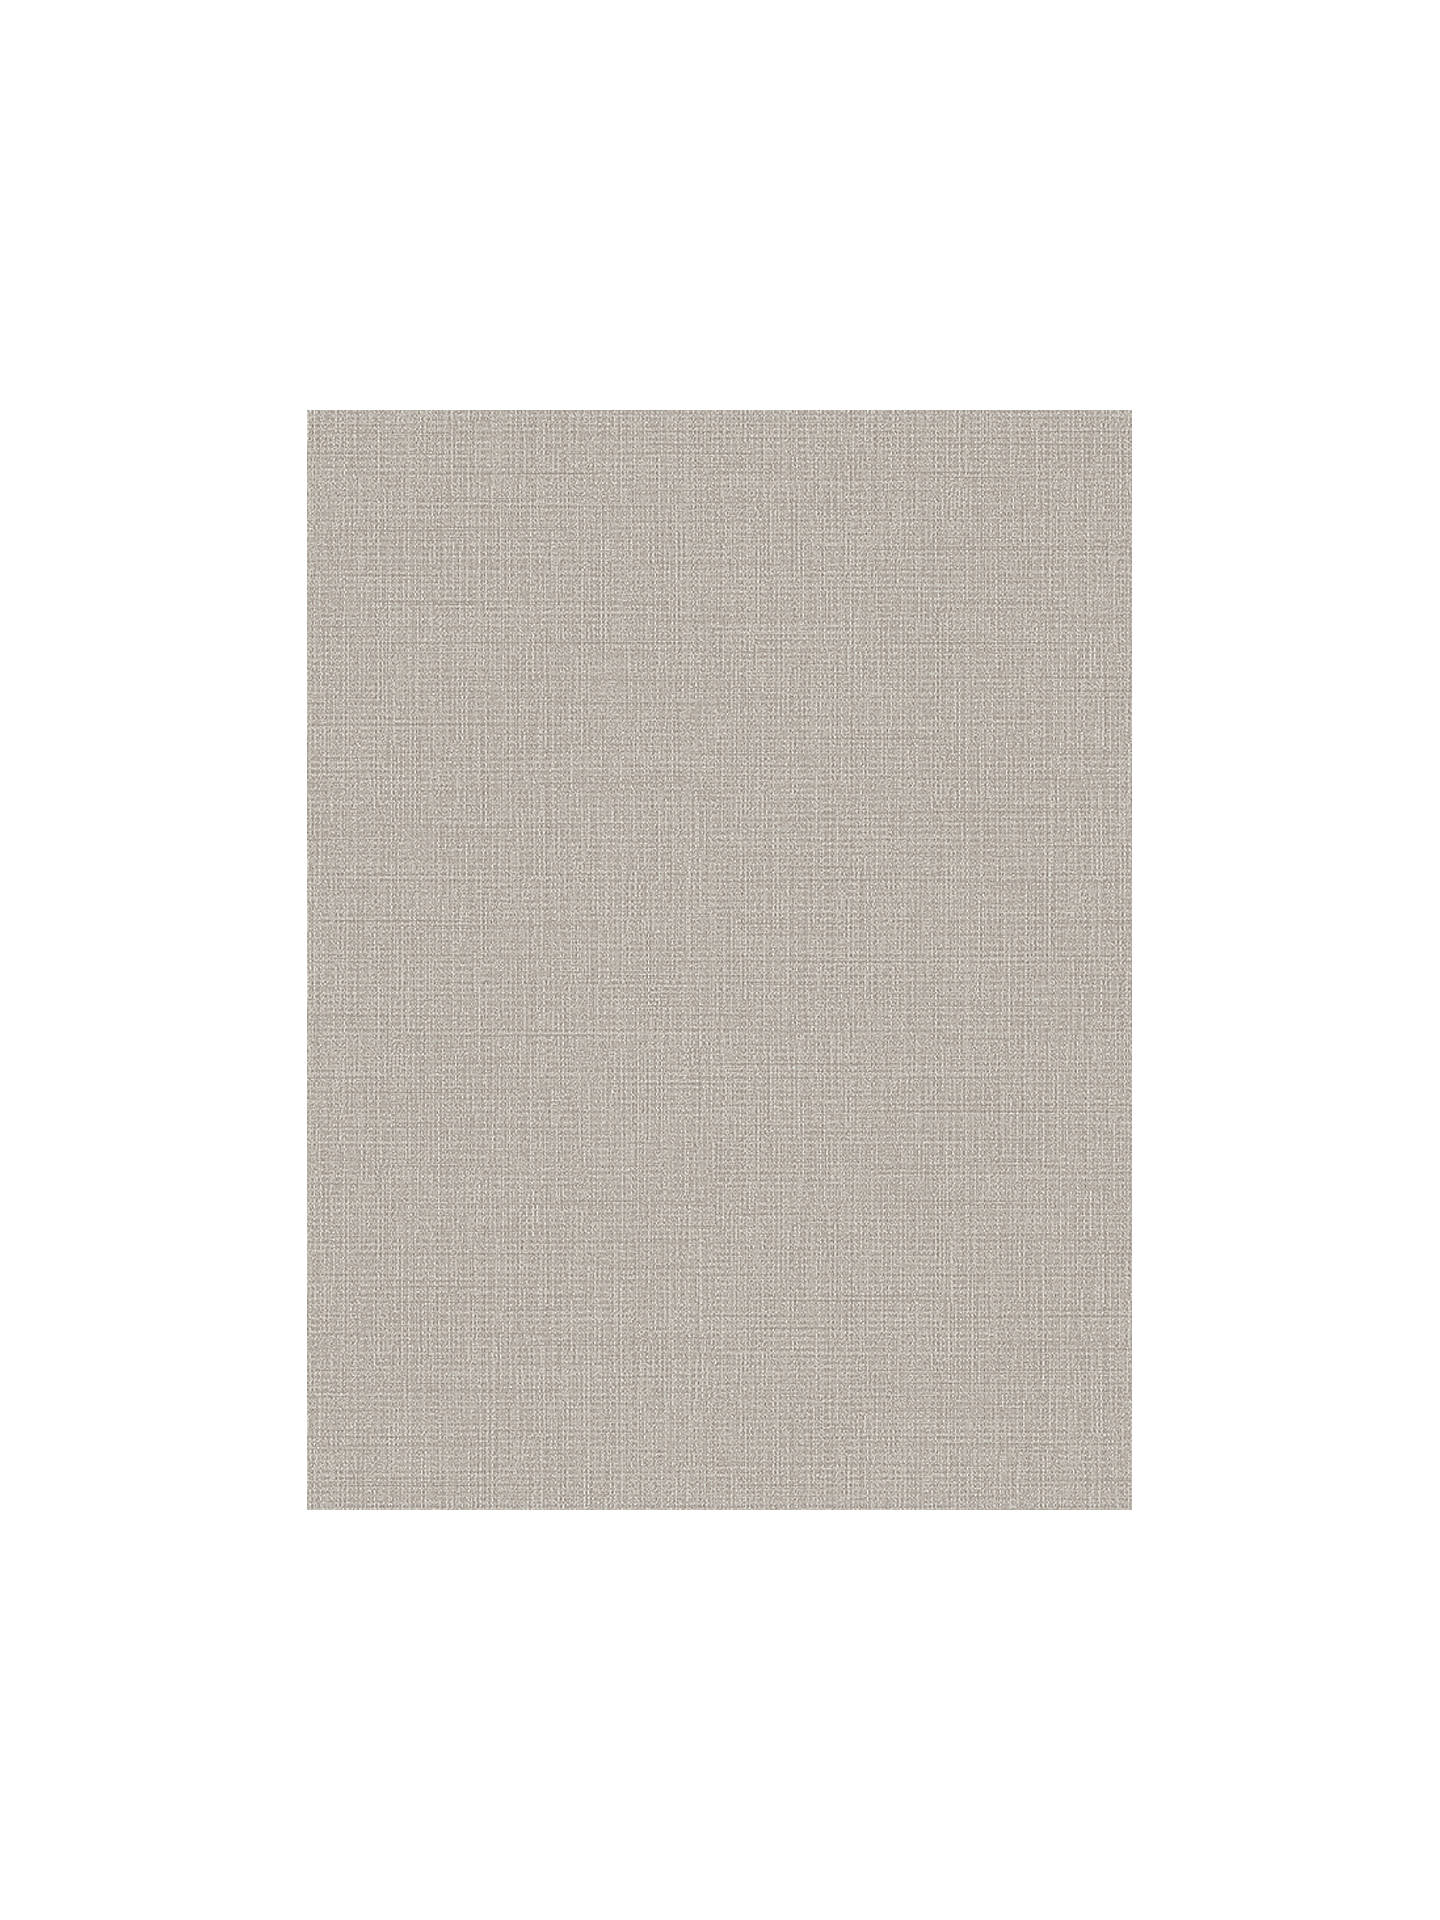 Buy Engblad & Co Raw Silk Wallpaper, 4569 Online at johnlewis.com